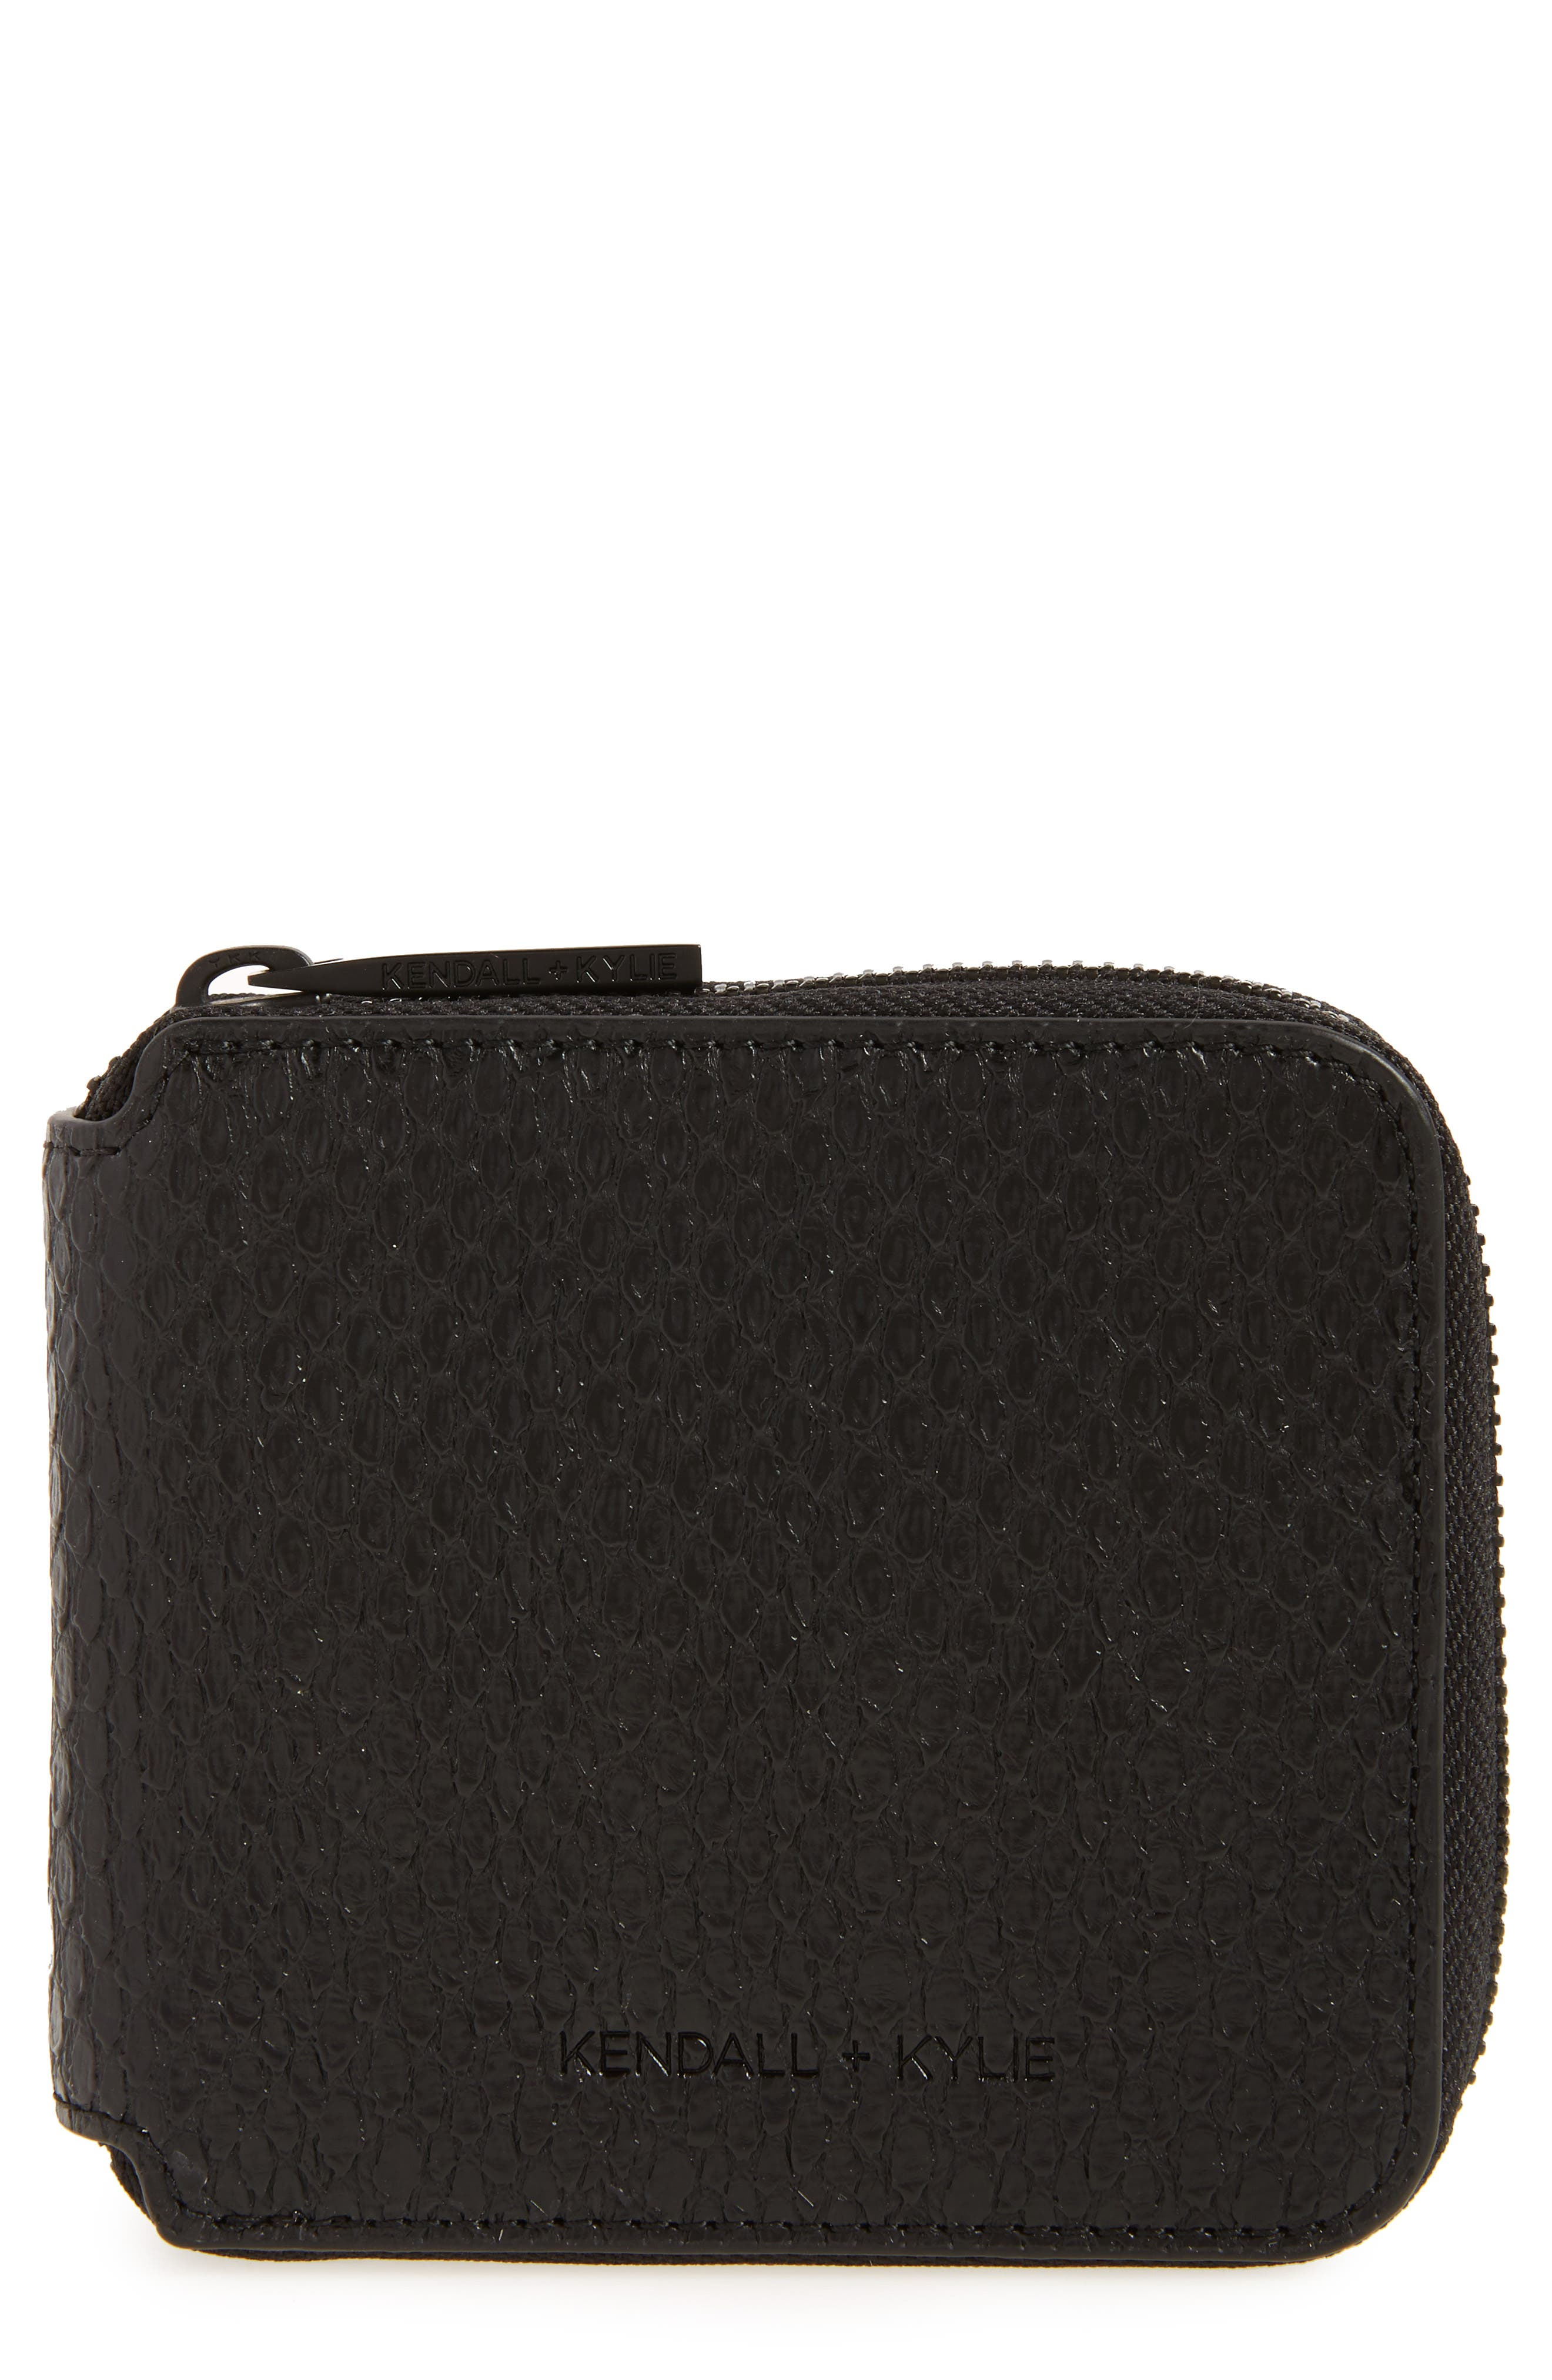 Brodie Faux Leather Wallet,                             Main thumbnail 1, color,                             004